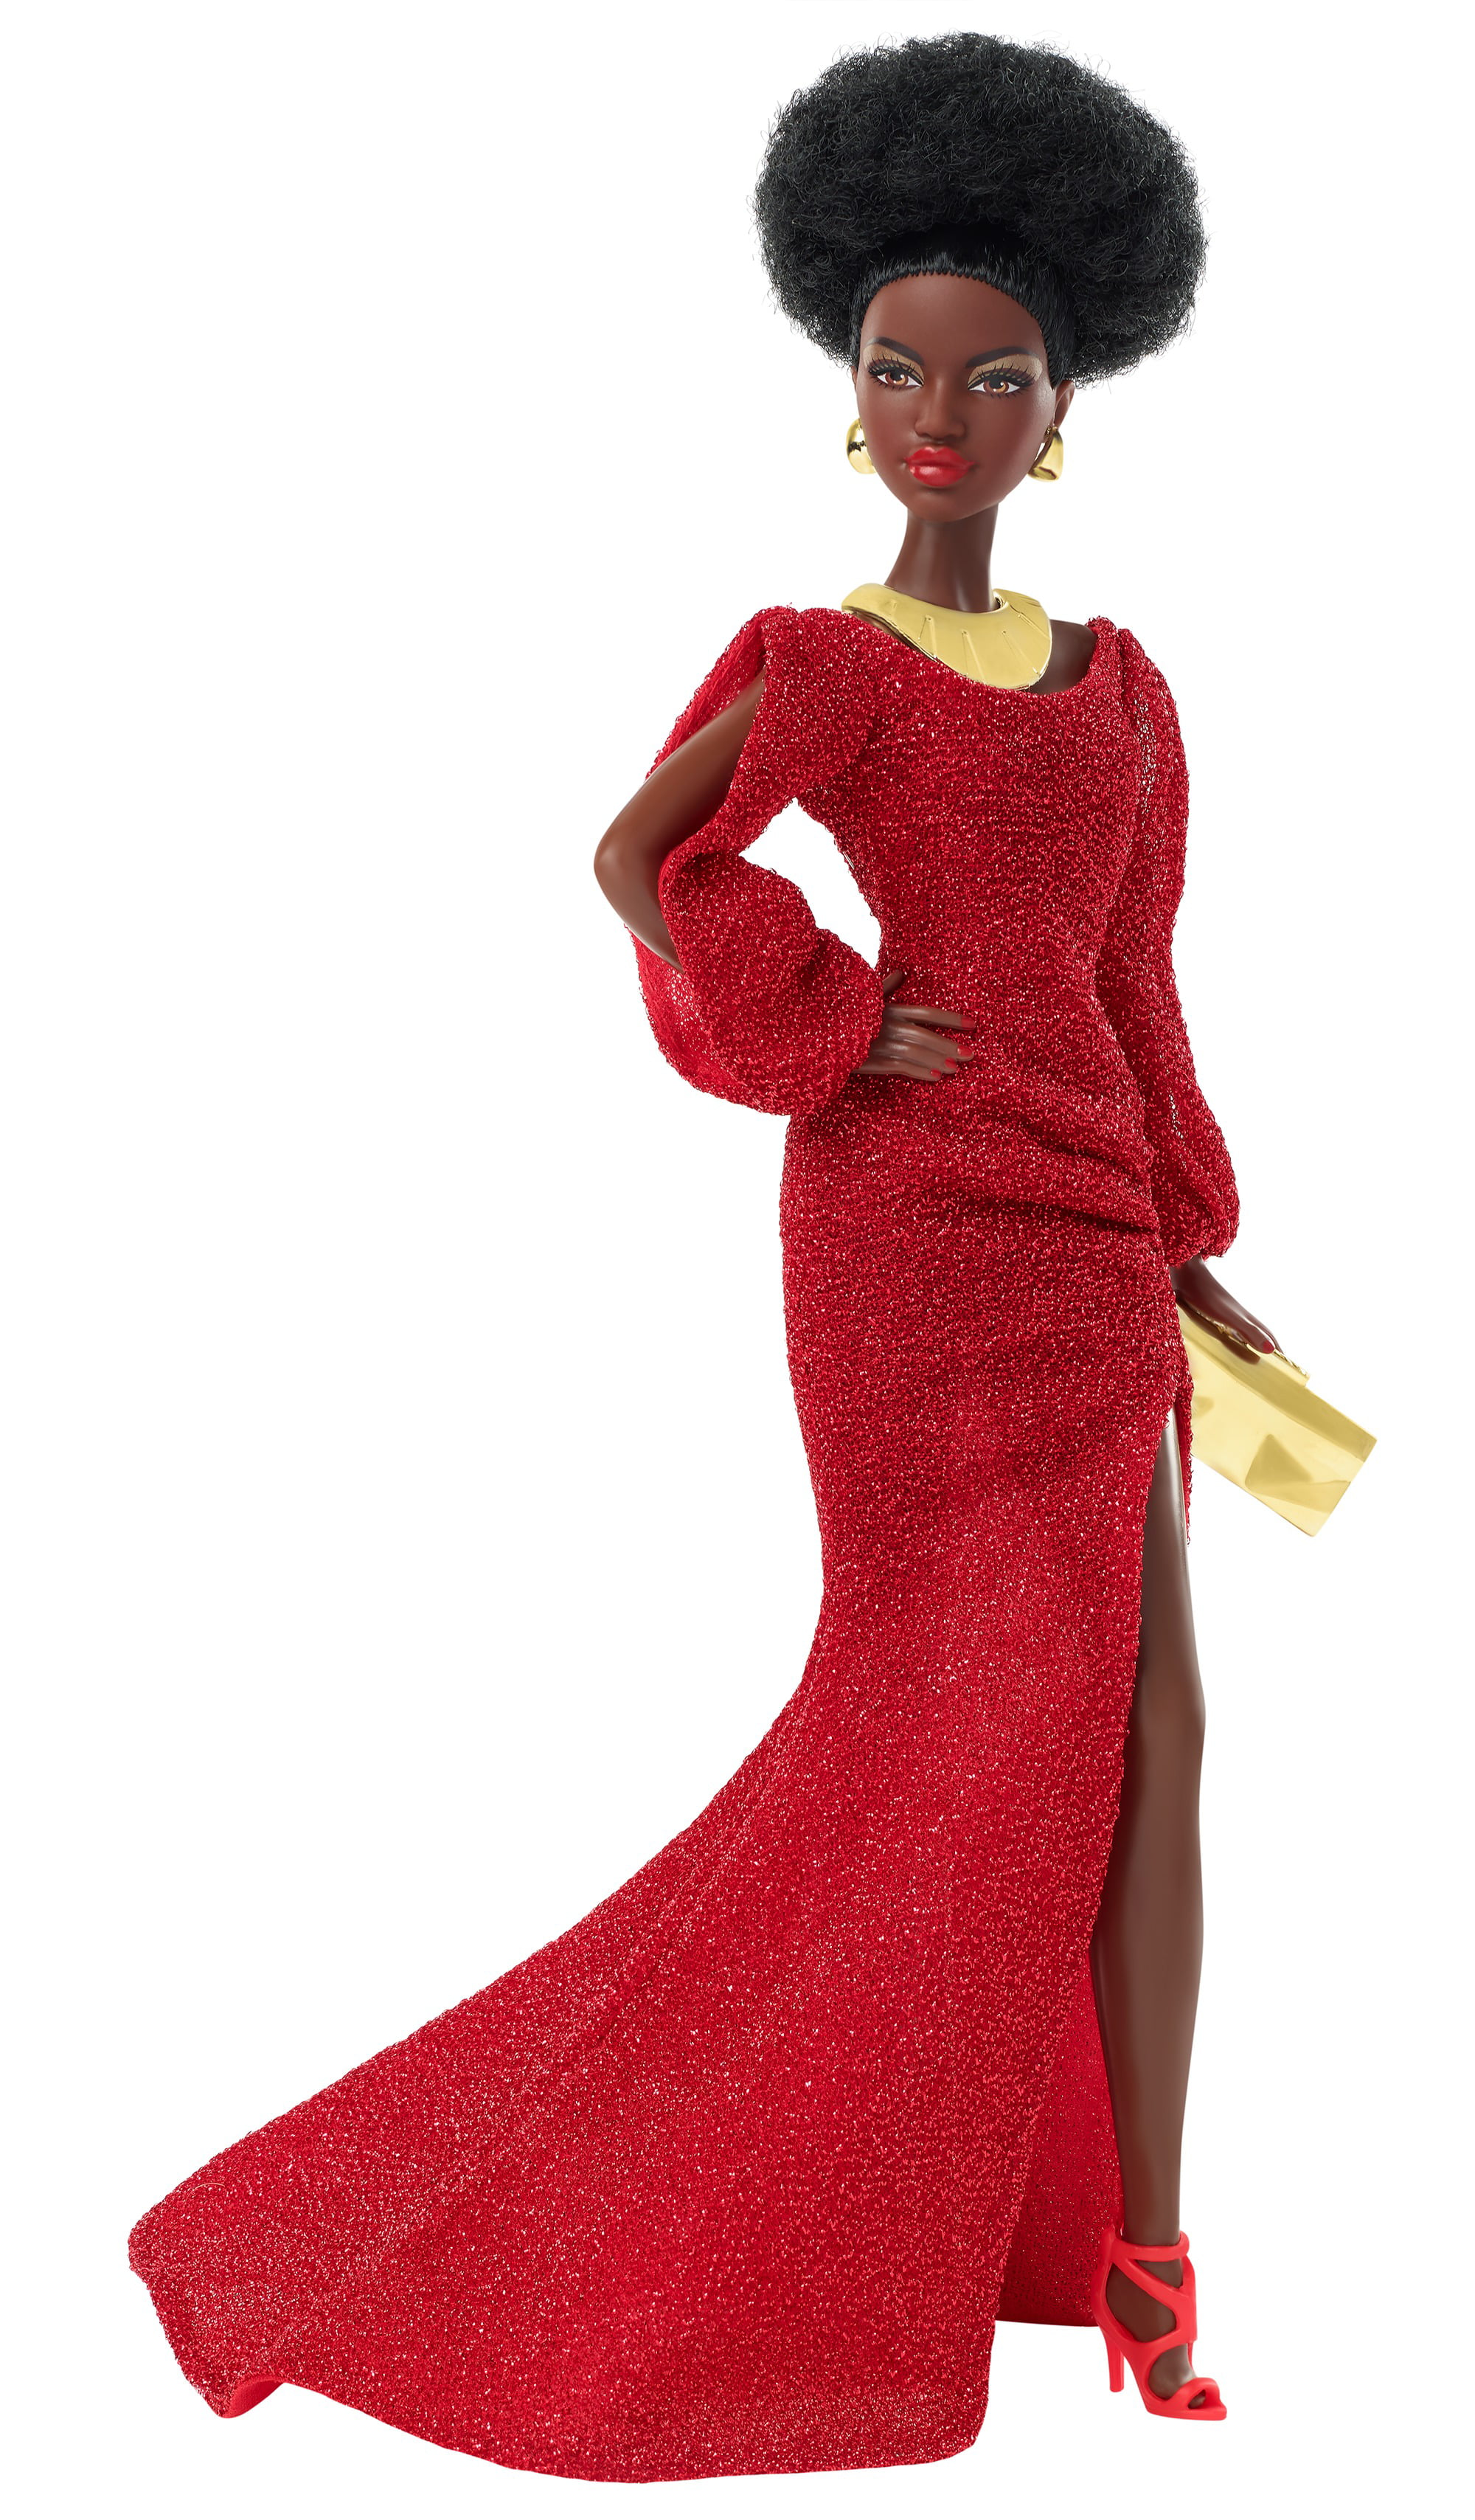 DRESS  DOLL 40TH ANNIVERSARY BLACK BARBIE RED SPARKLY TRUMPET EVENING GOWN